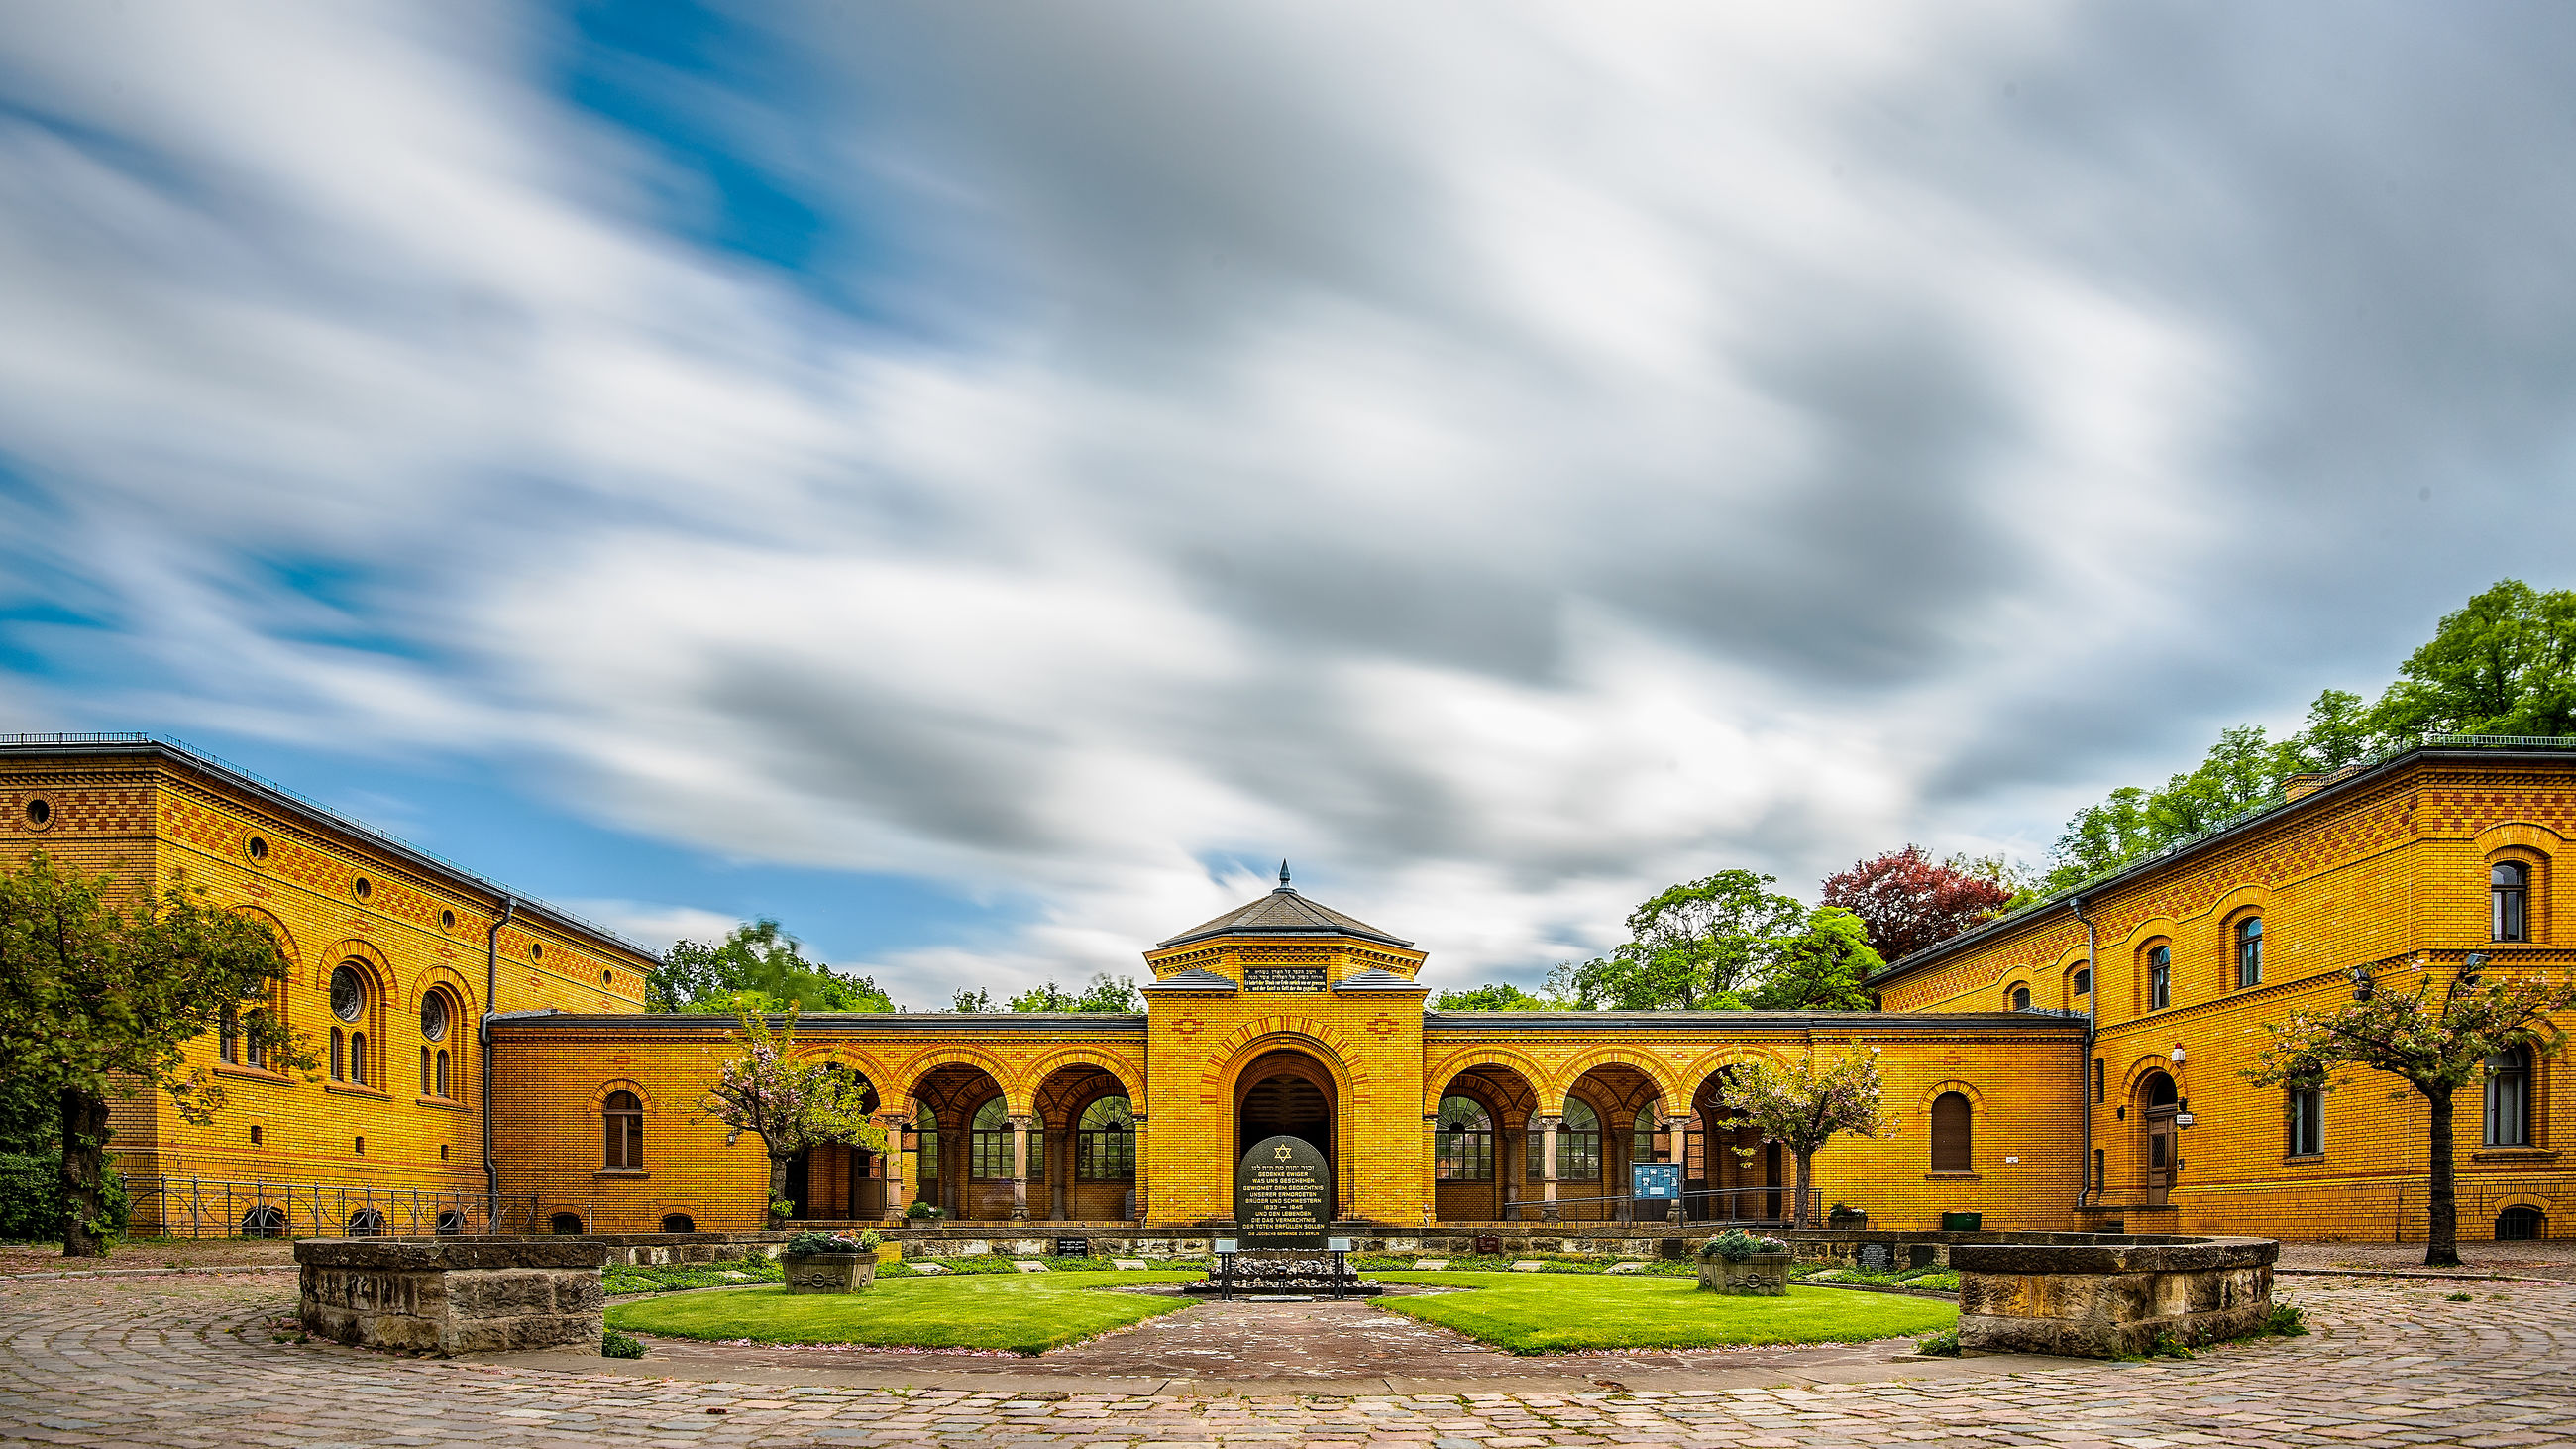 architecture, built structure, cloud - sky, sky, building exterior, arch, nature, building, history, day, the past, plant, no people, tree, outdoors, travel destinations, religion, belief, place of worship